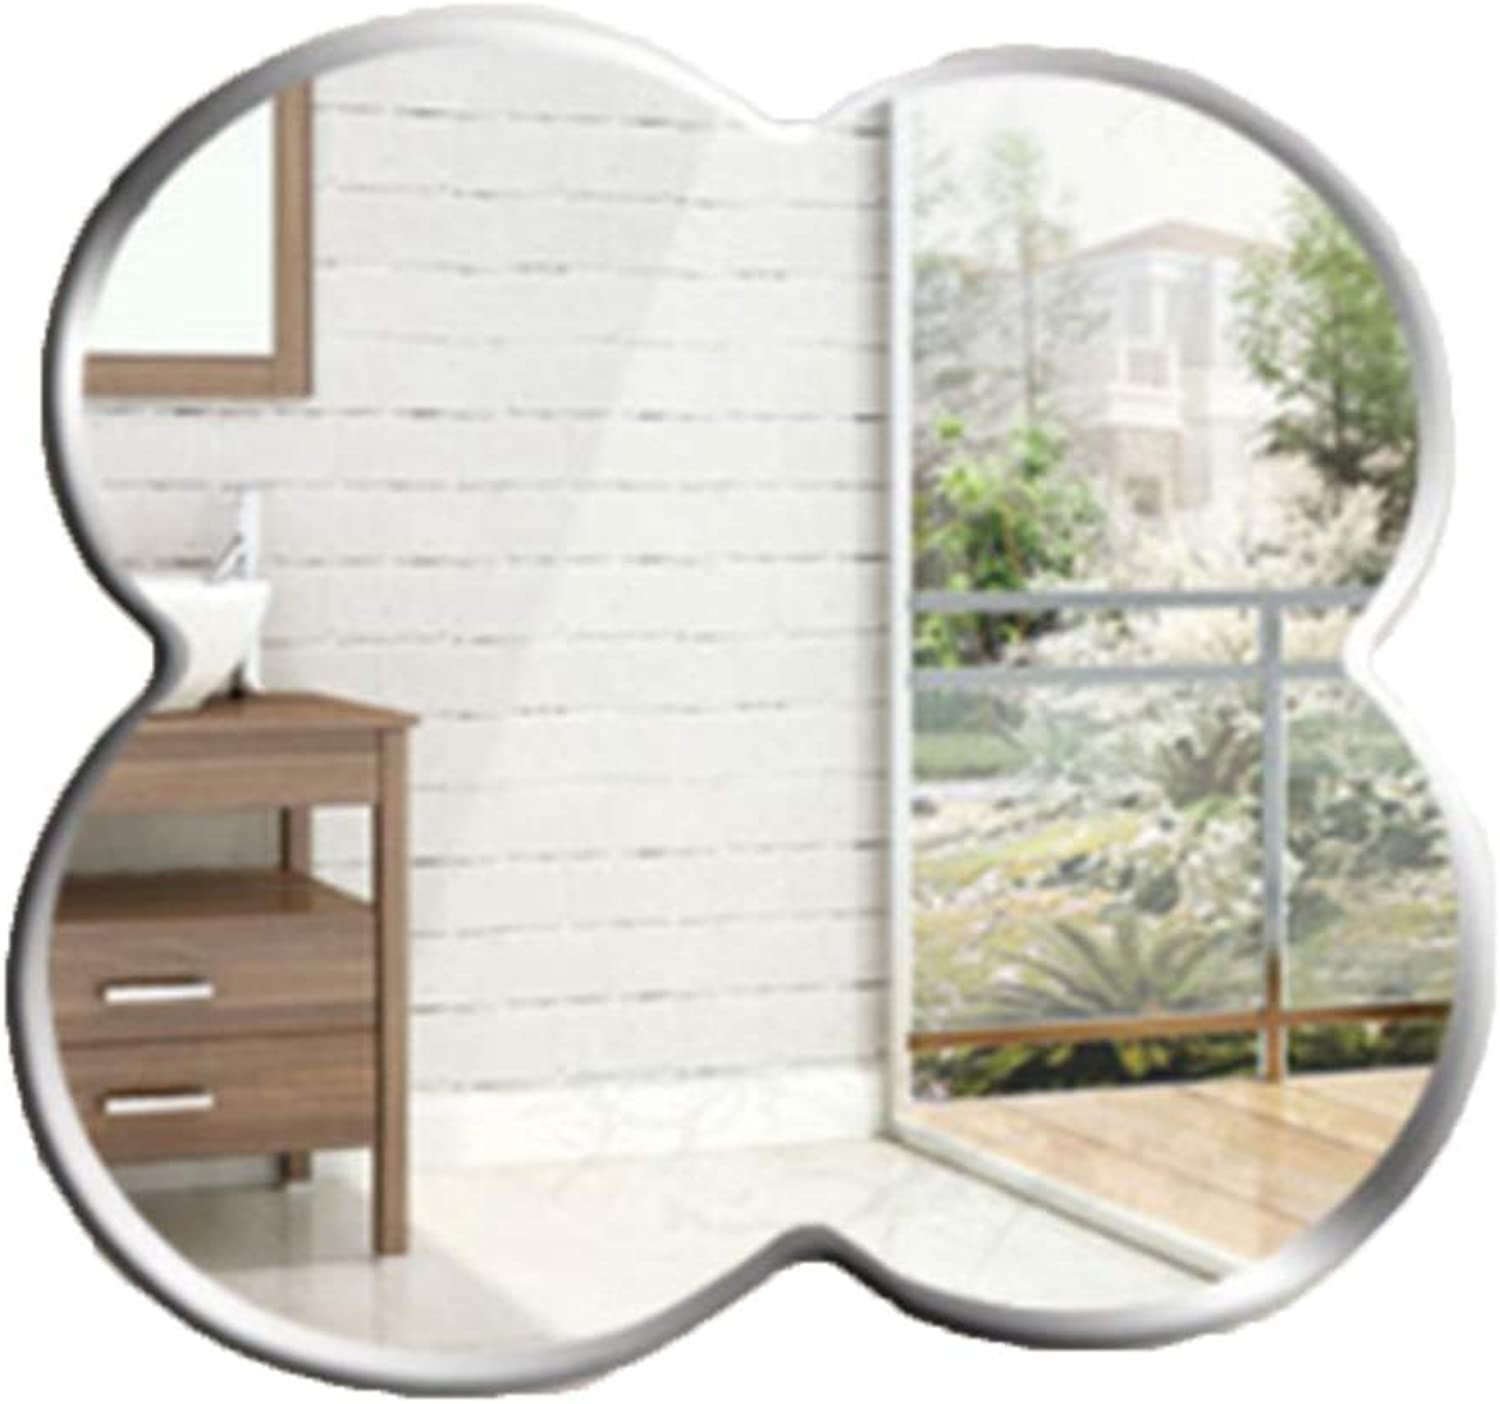 Mirrors Makeup Mirror Simple Shaped Wall Bathroom Mirror Frameless Bathroom Mirror Bathroom Mirror Wall Mirror (color   Silver, Size   59  59cm)